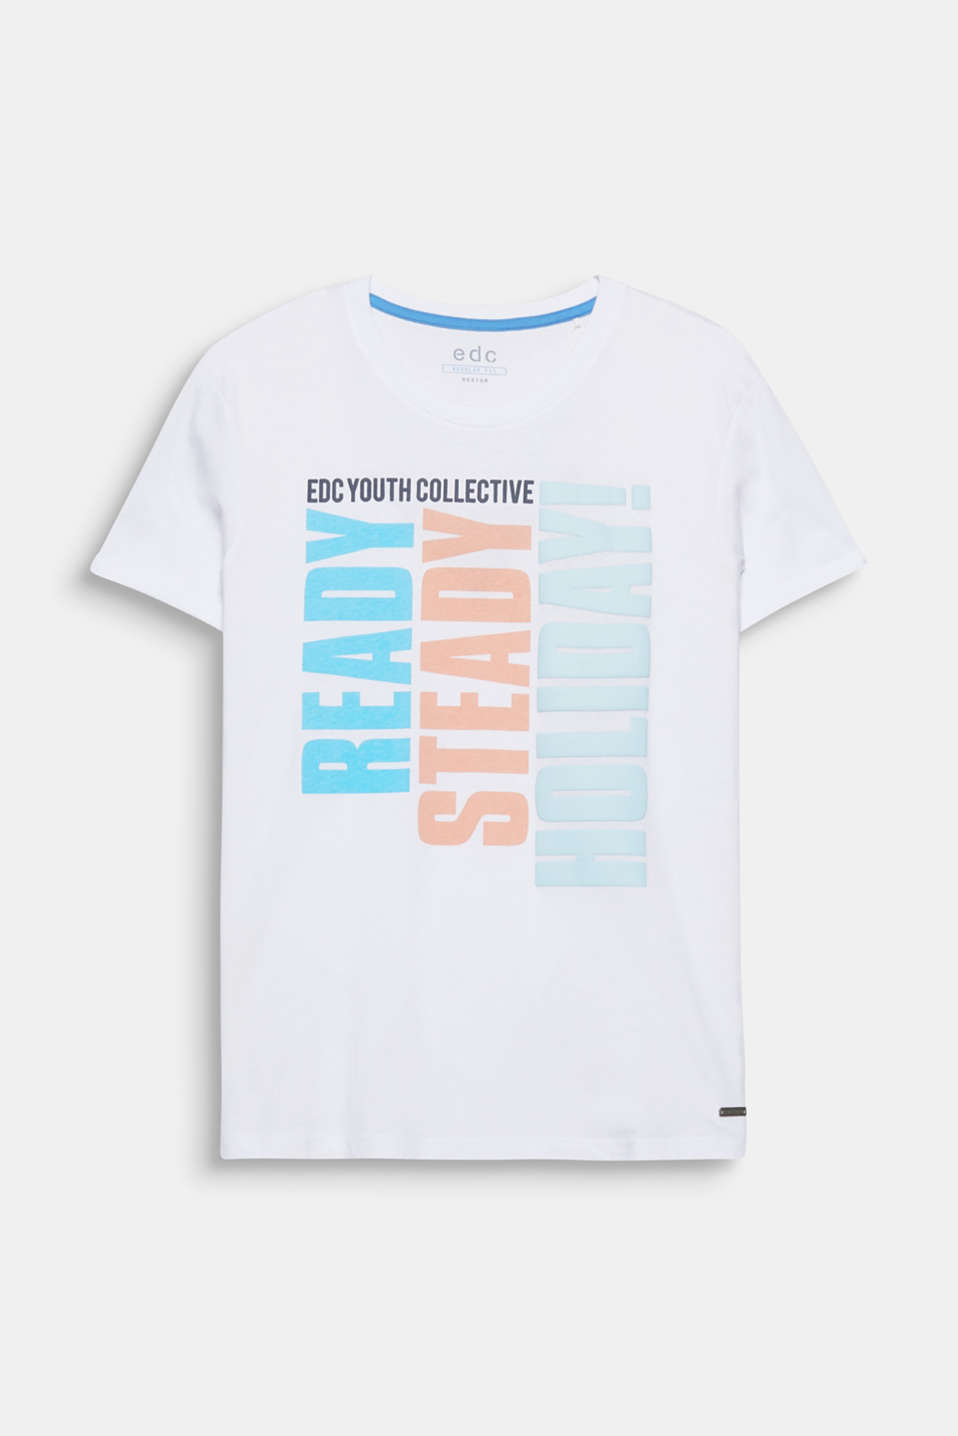 Ready, Steady, Holiday! Et print, et statement - på denne T-shirt i 100% bomuld.